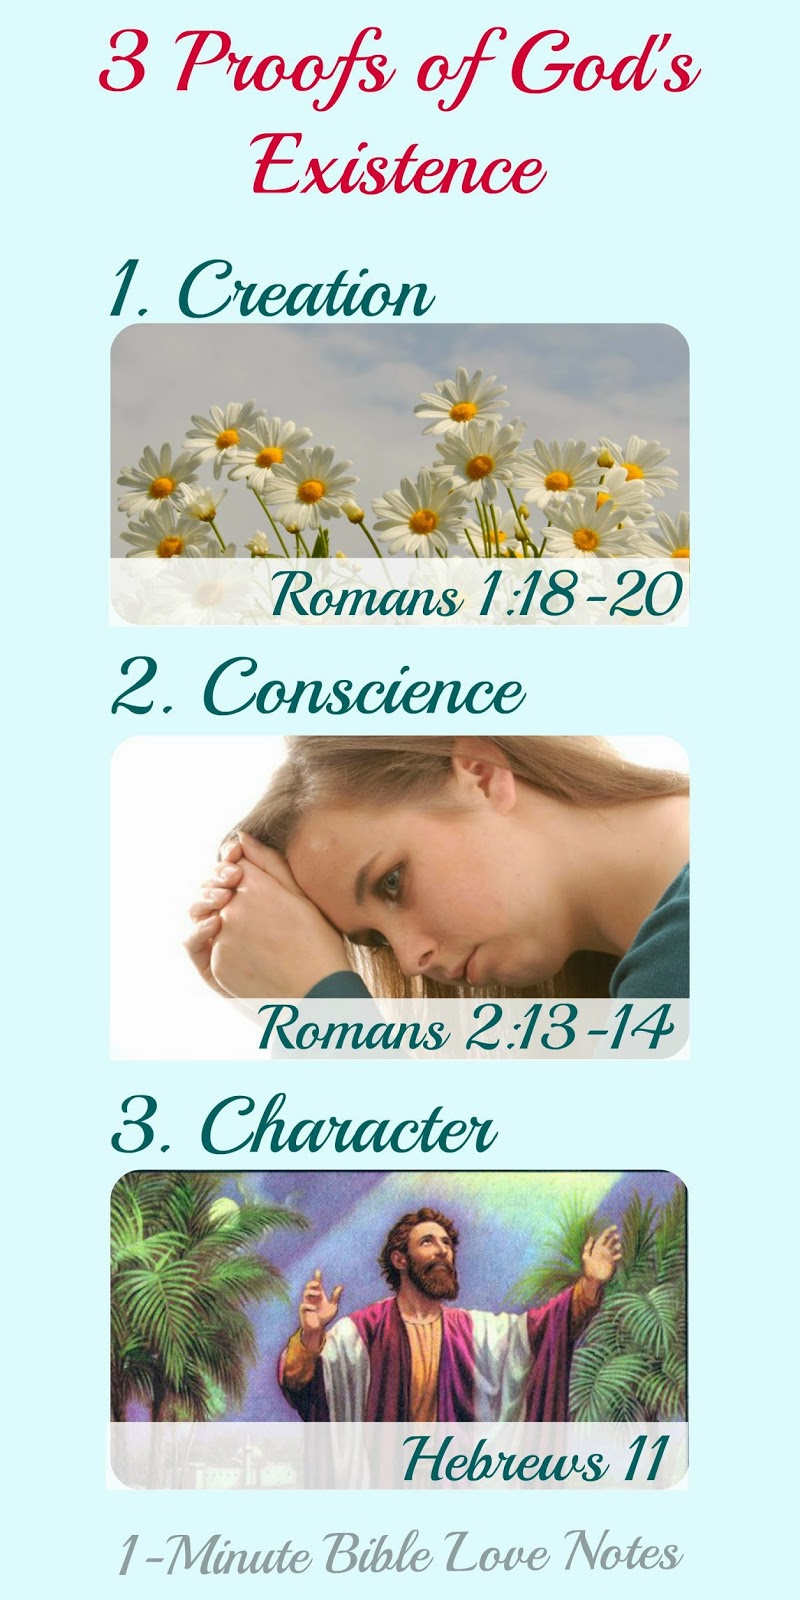 foolish atheism, 3 proofs of God's existence, God present in Creation, God present in Character, God present in conscience